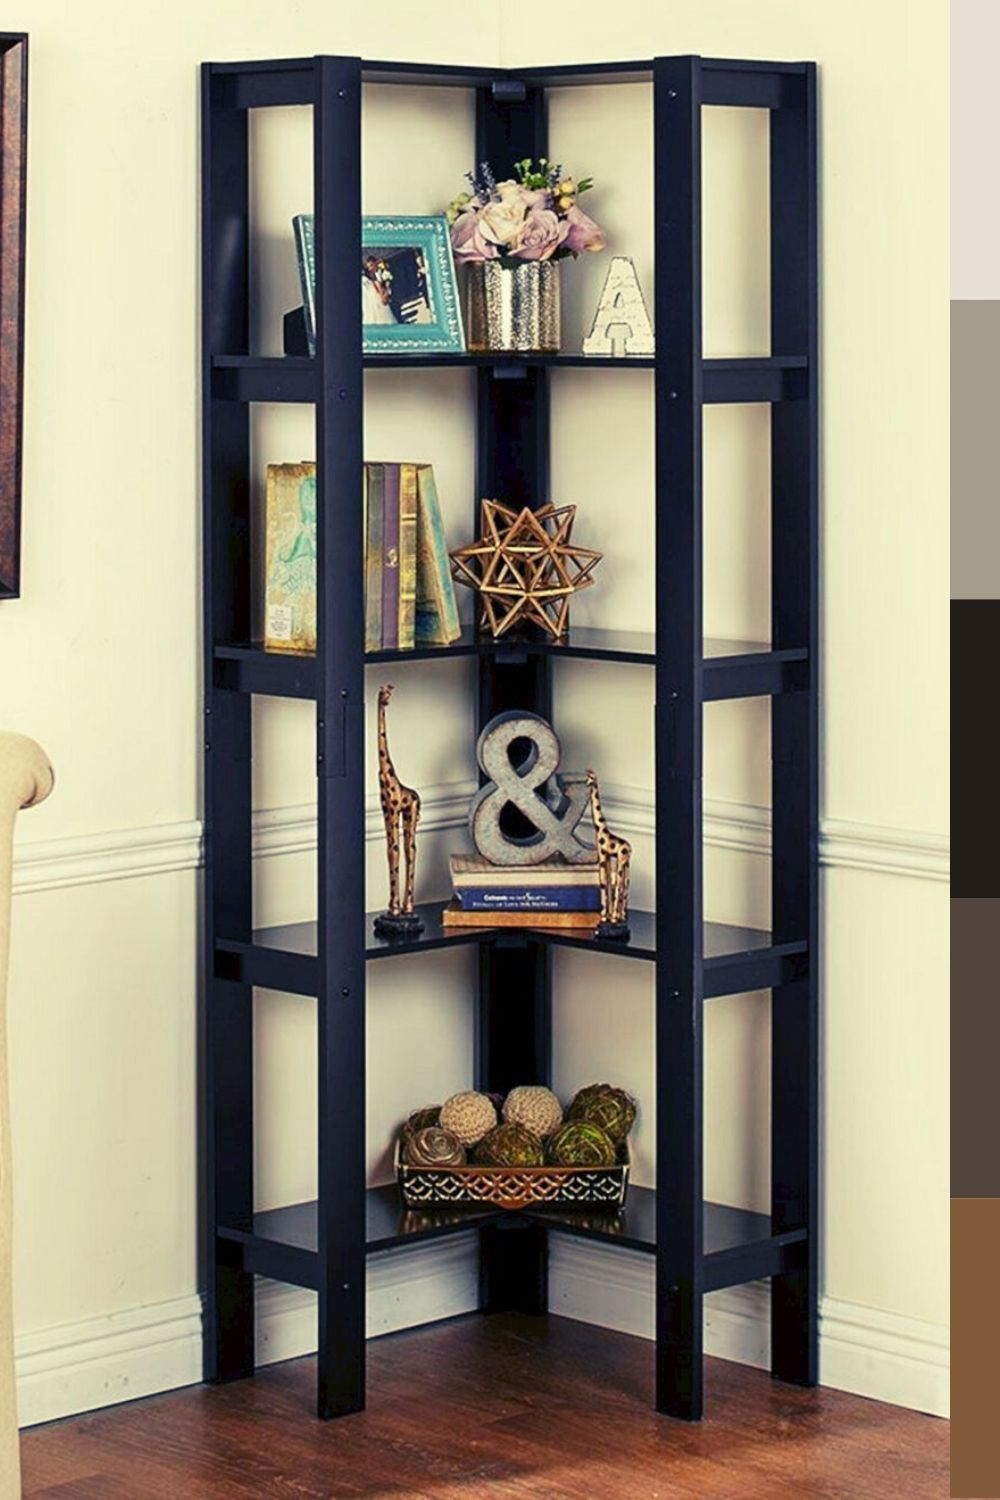 Details About White 5 Tier Tall Corner Shelf Shelving Unit Display Stand Home Bathroom Lounge Tall Corner Shelf Wooden Corner Shelf Corner Shelves Shelf Decor Living Room Tall Corner Shelf Corner Shelves